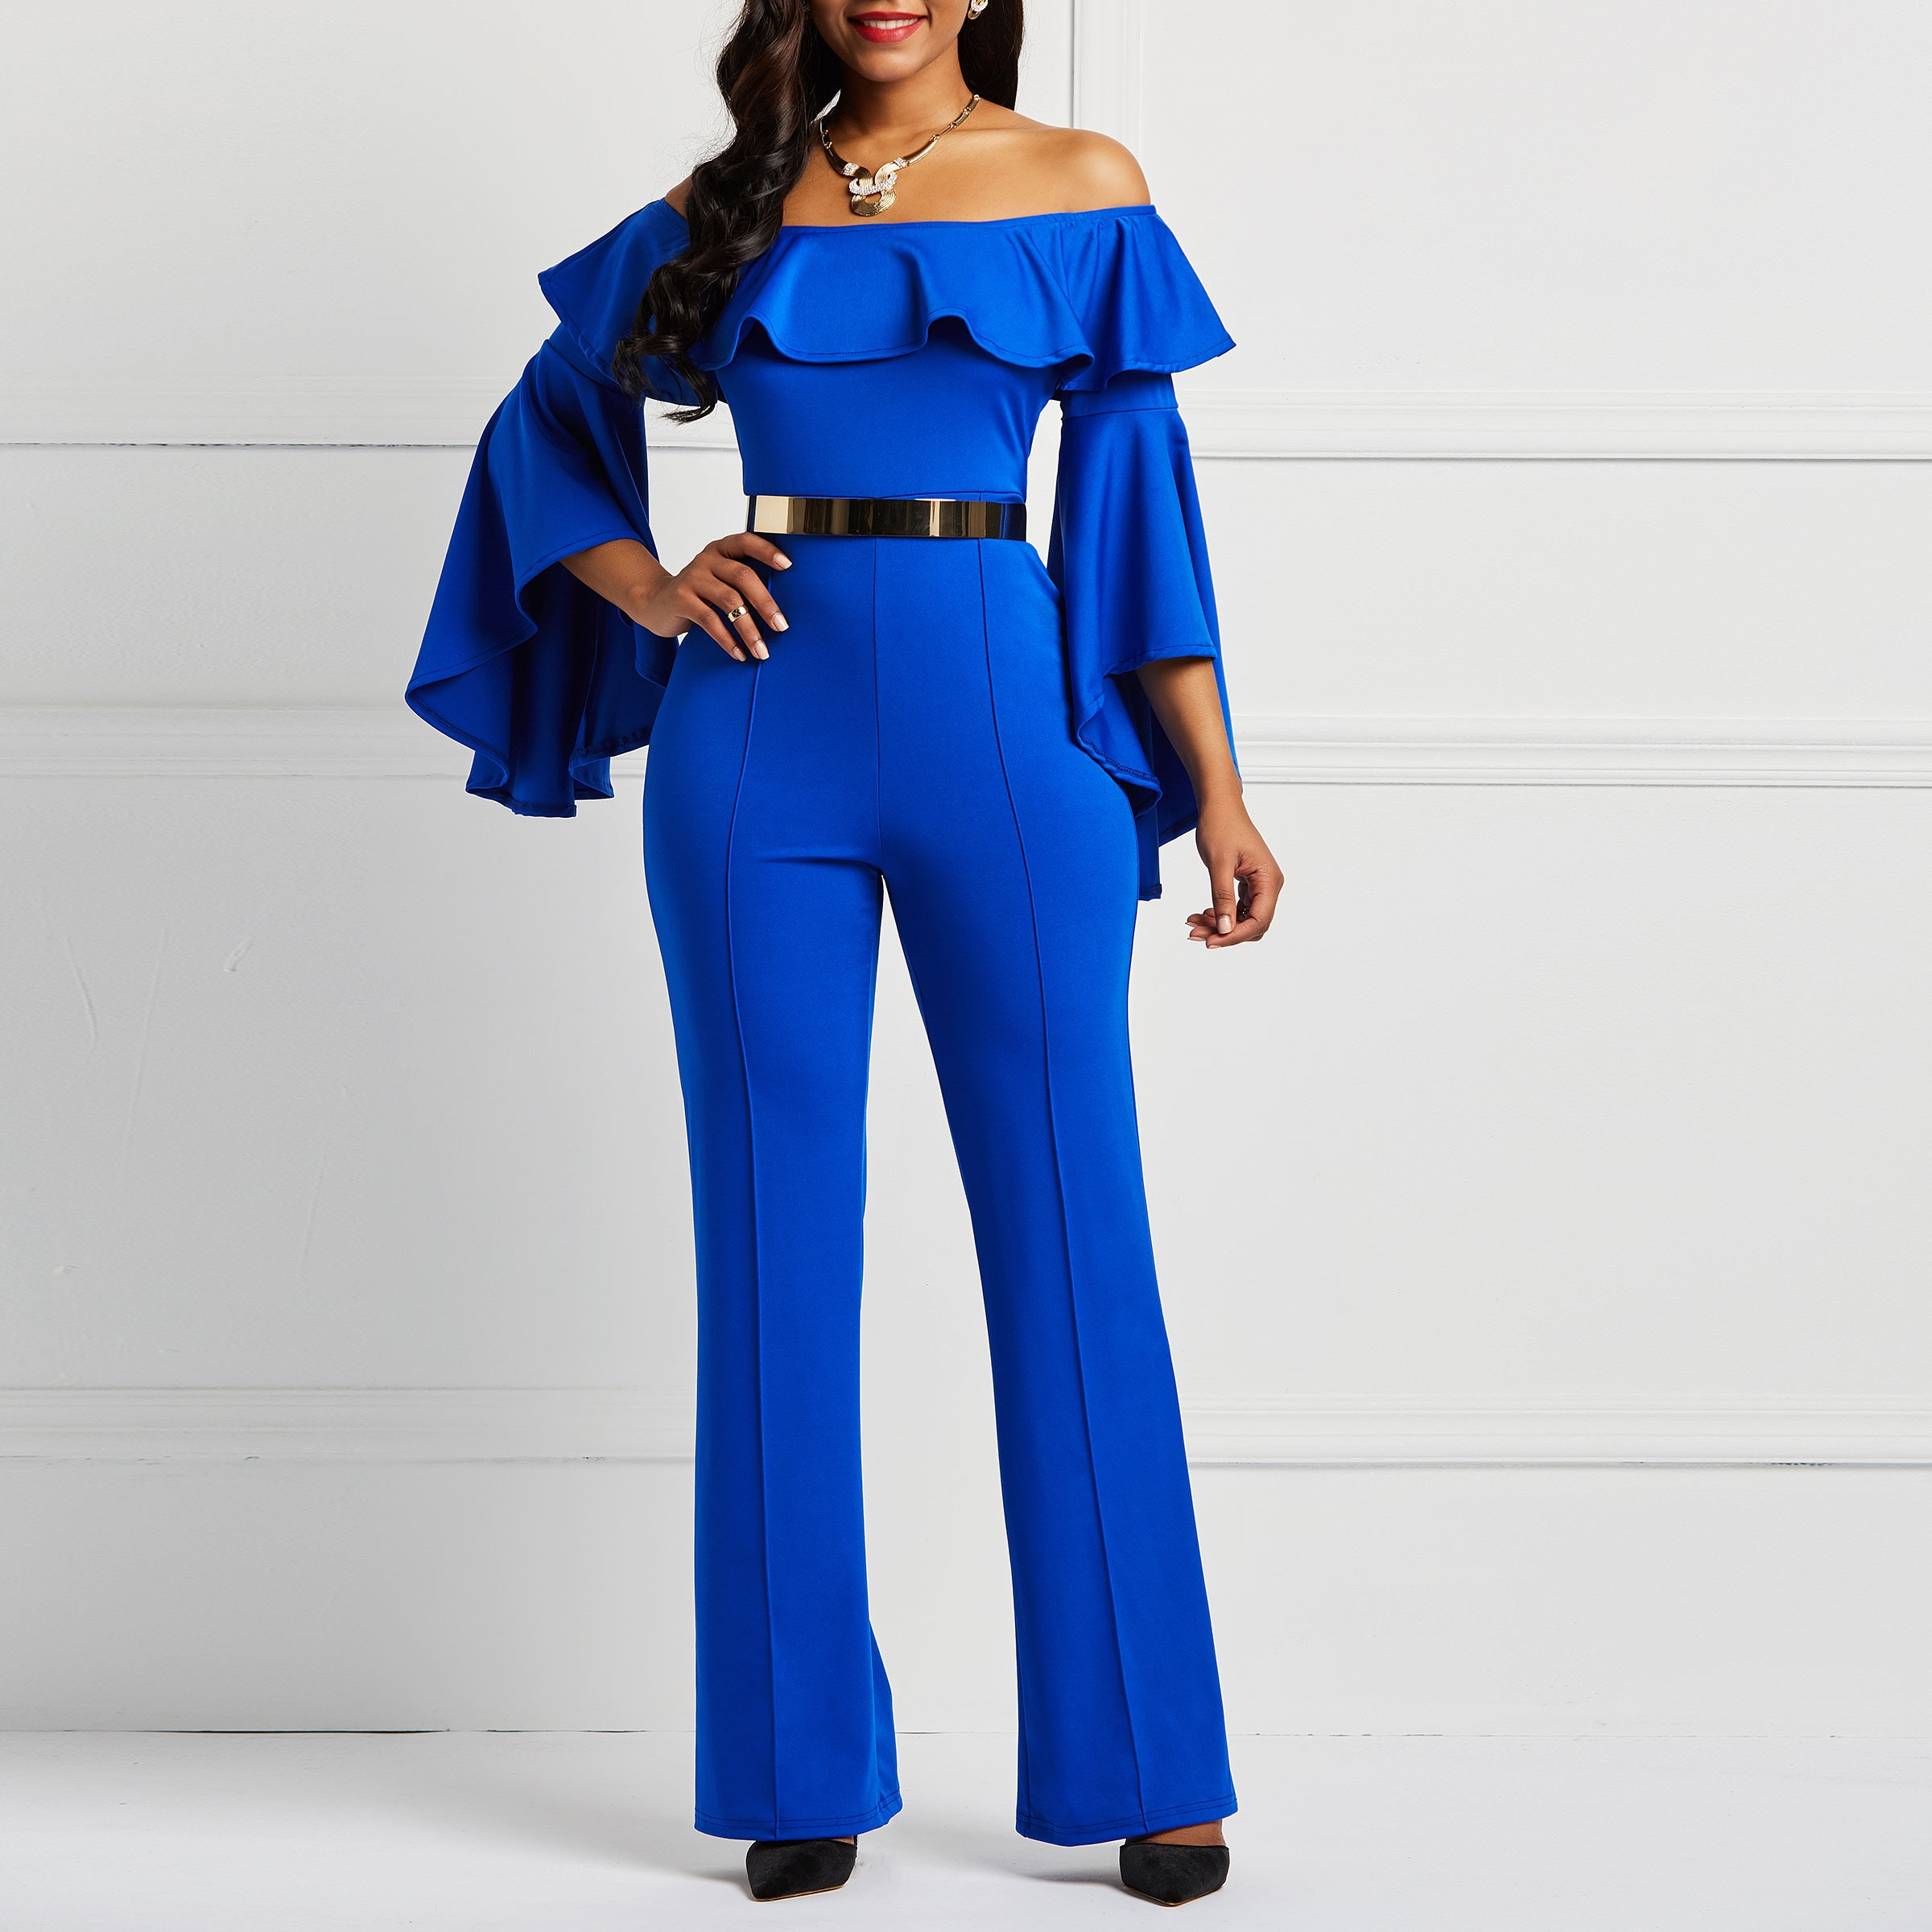 Women   Jumpsuits   Sexy Office Lady Fashion Skinny Wide Legs Plain Falbala Backless Patchwork Female Bodycon Off Shoulder Rompers